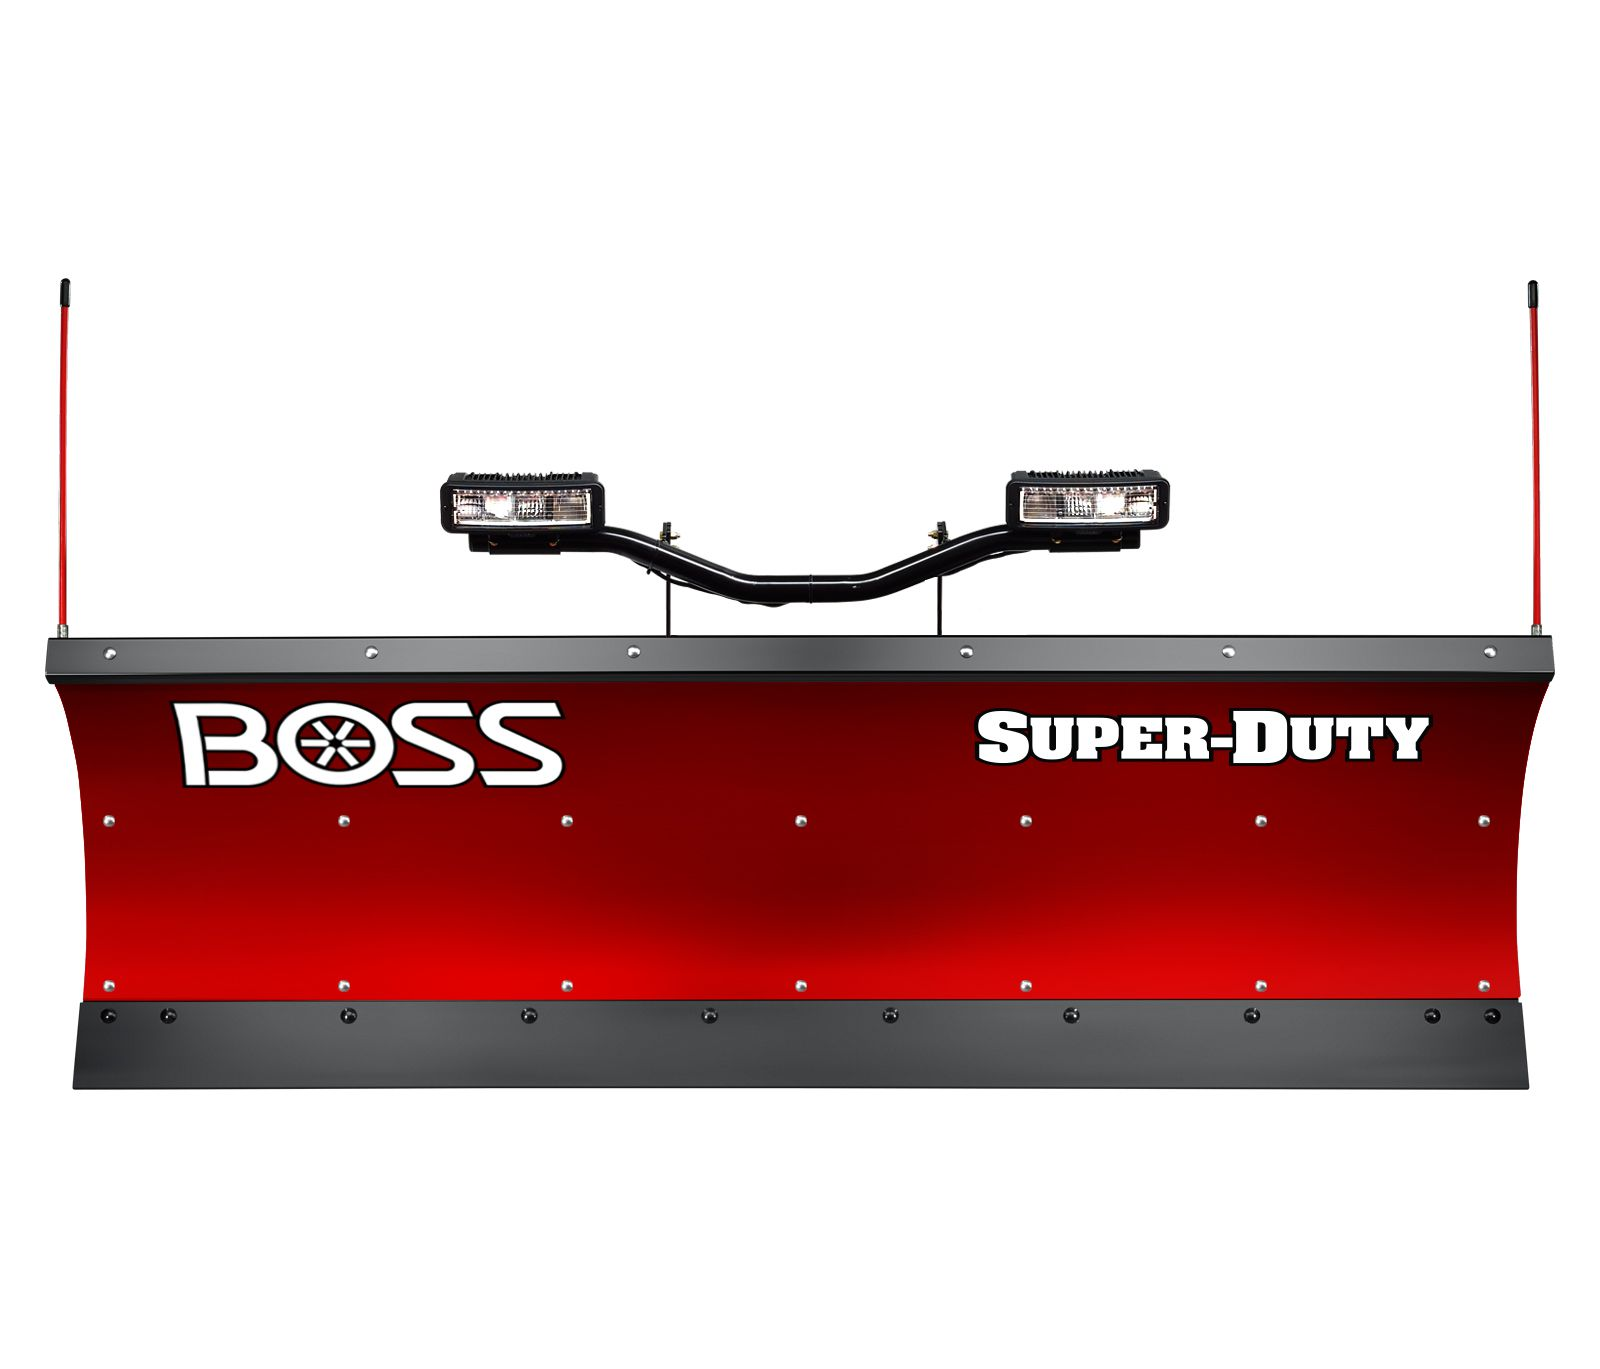 BOSS Super-Duty Polyethylene Plow